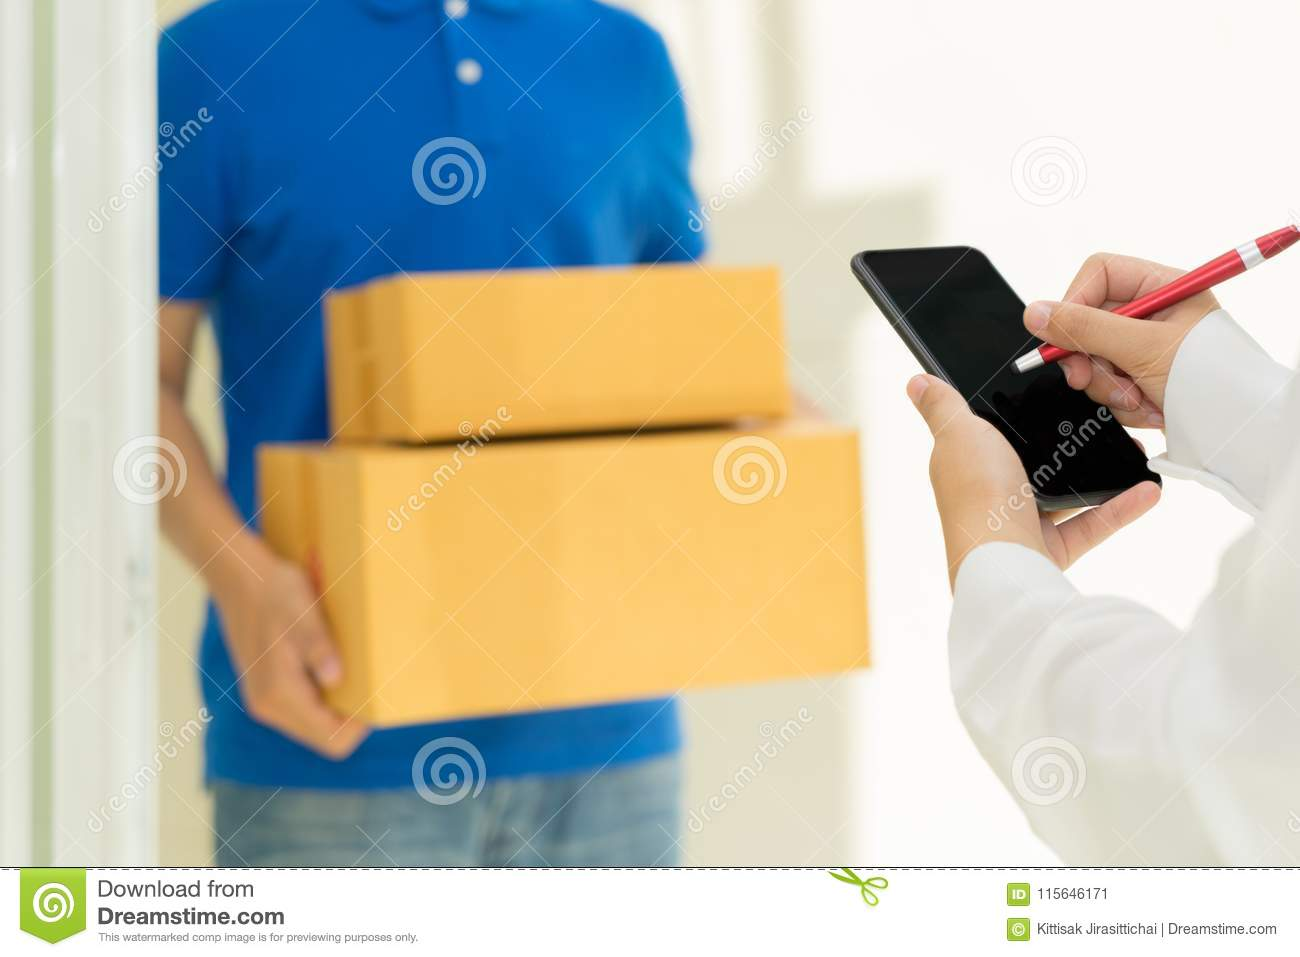 Woman receiving package and signing on digital mobile phone from